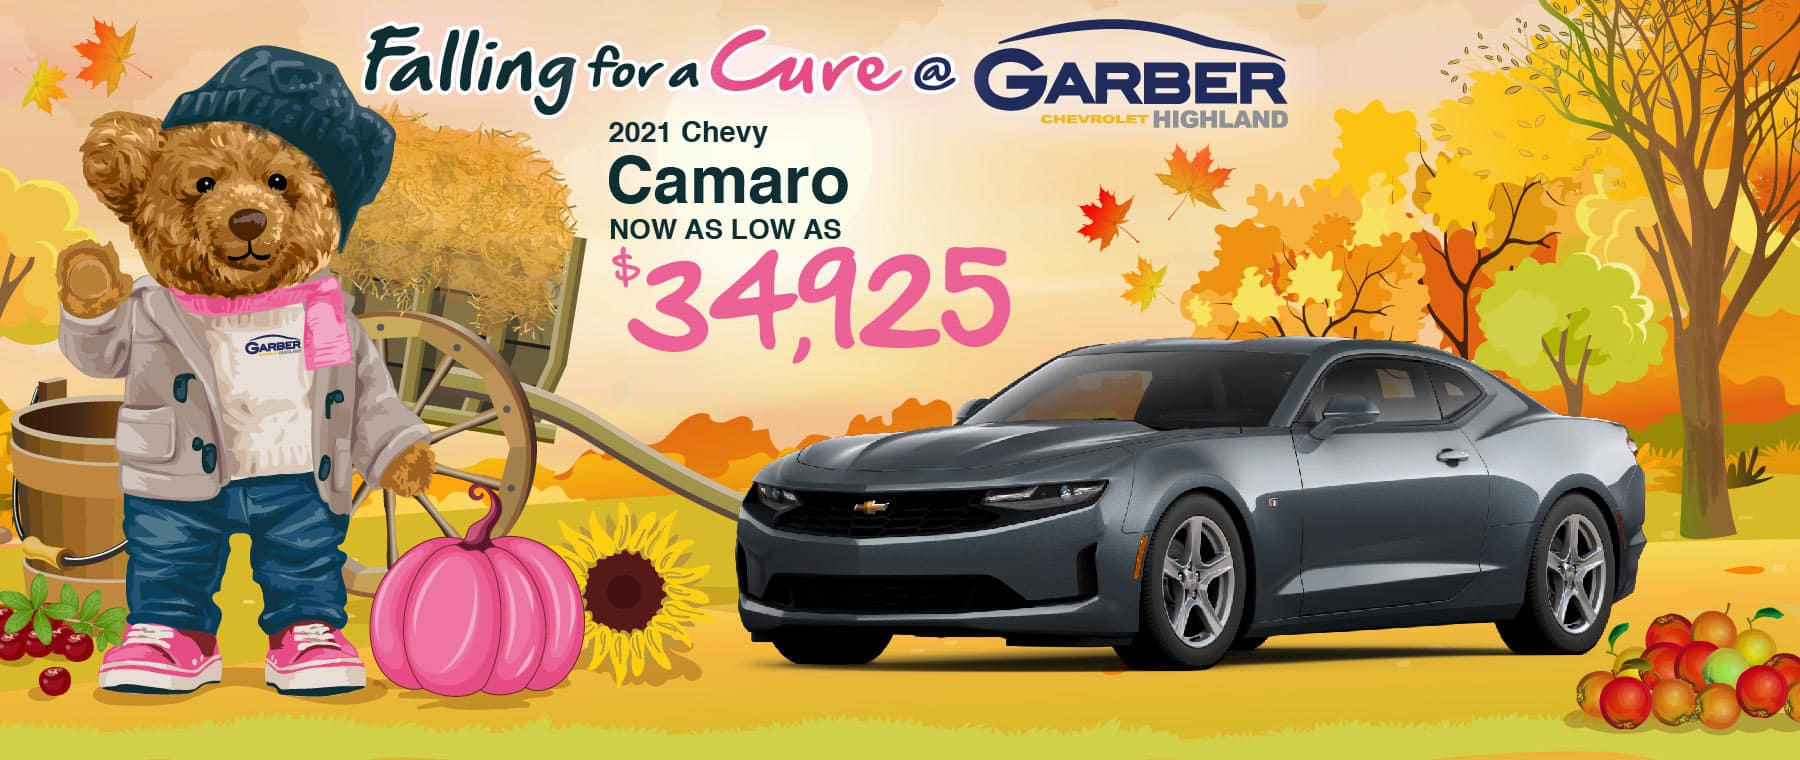 2021 Chevy Camaro - as low as $41450